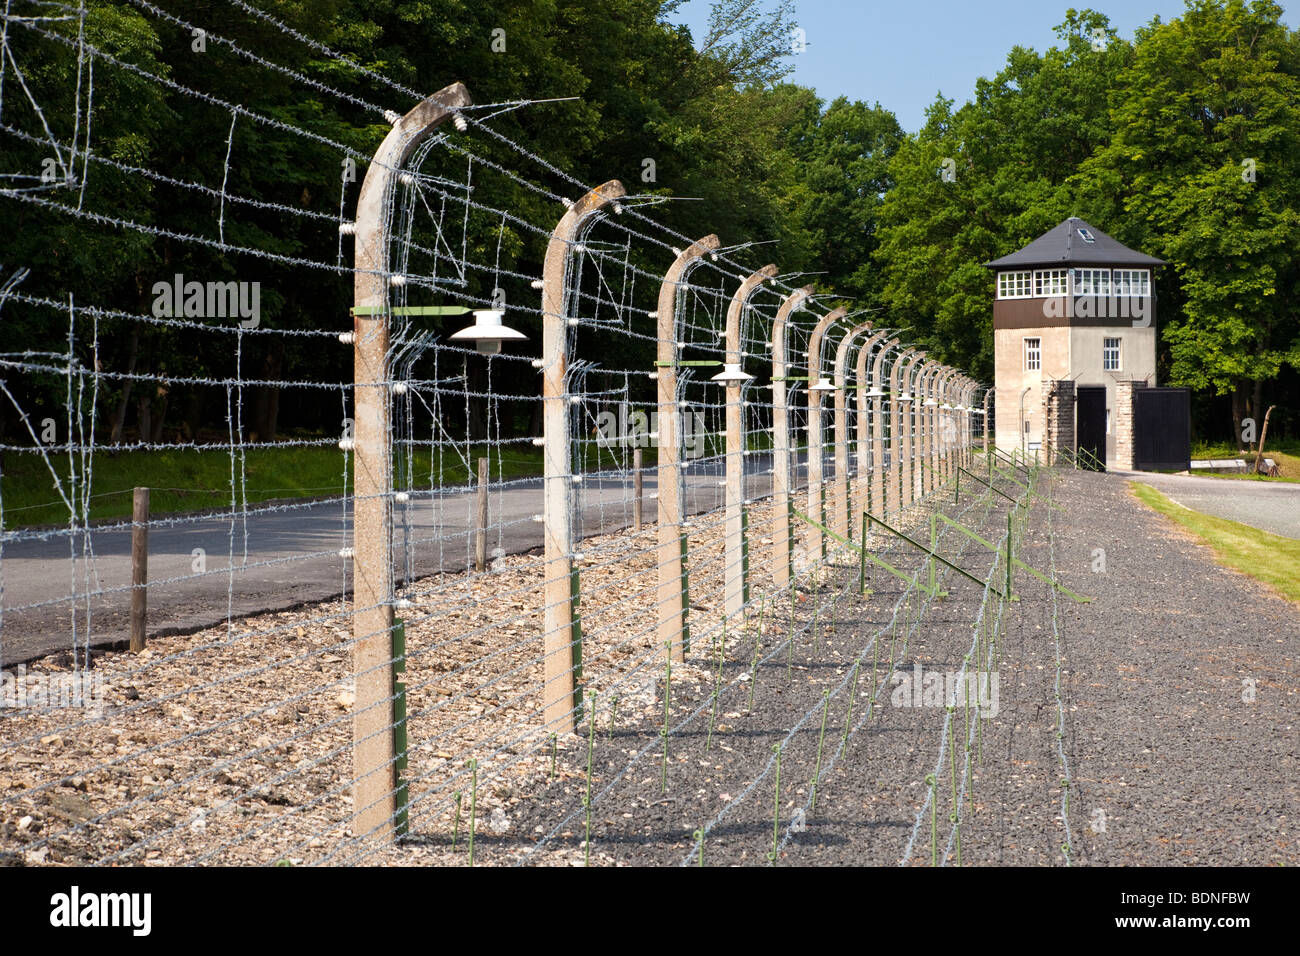 Barbed wire fence and guard tower at the Buchenwald Nazi Concentration Camp, Ettersberg, Germany, Europe - Stock Image